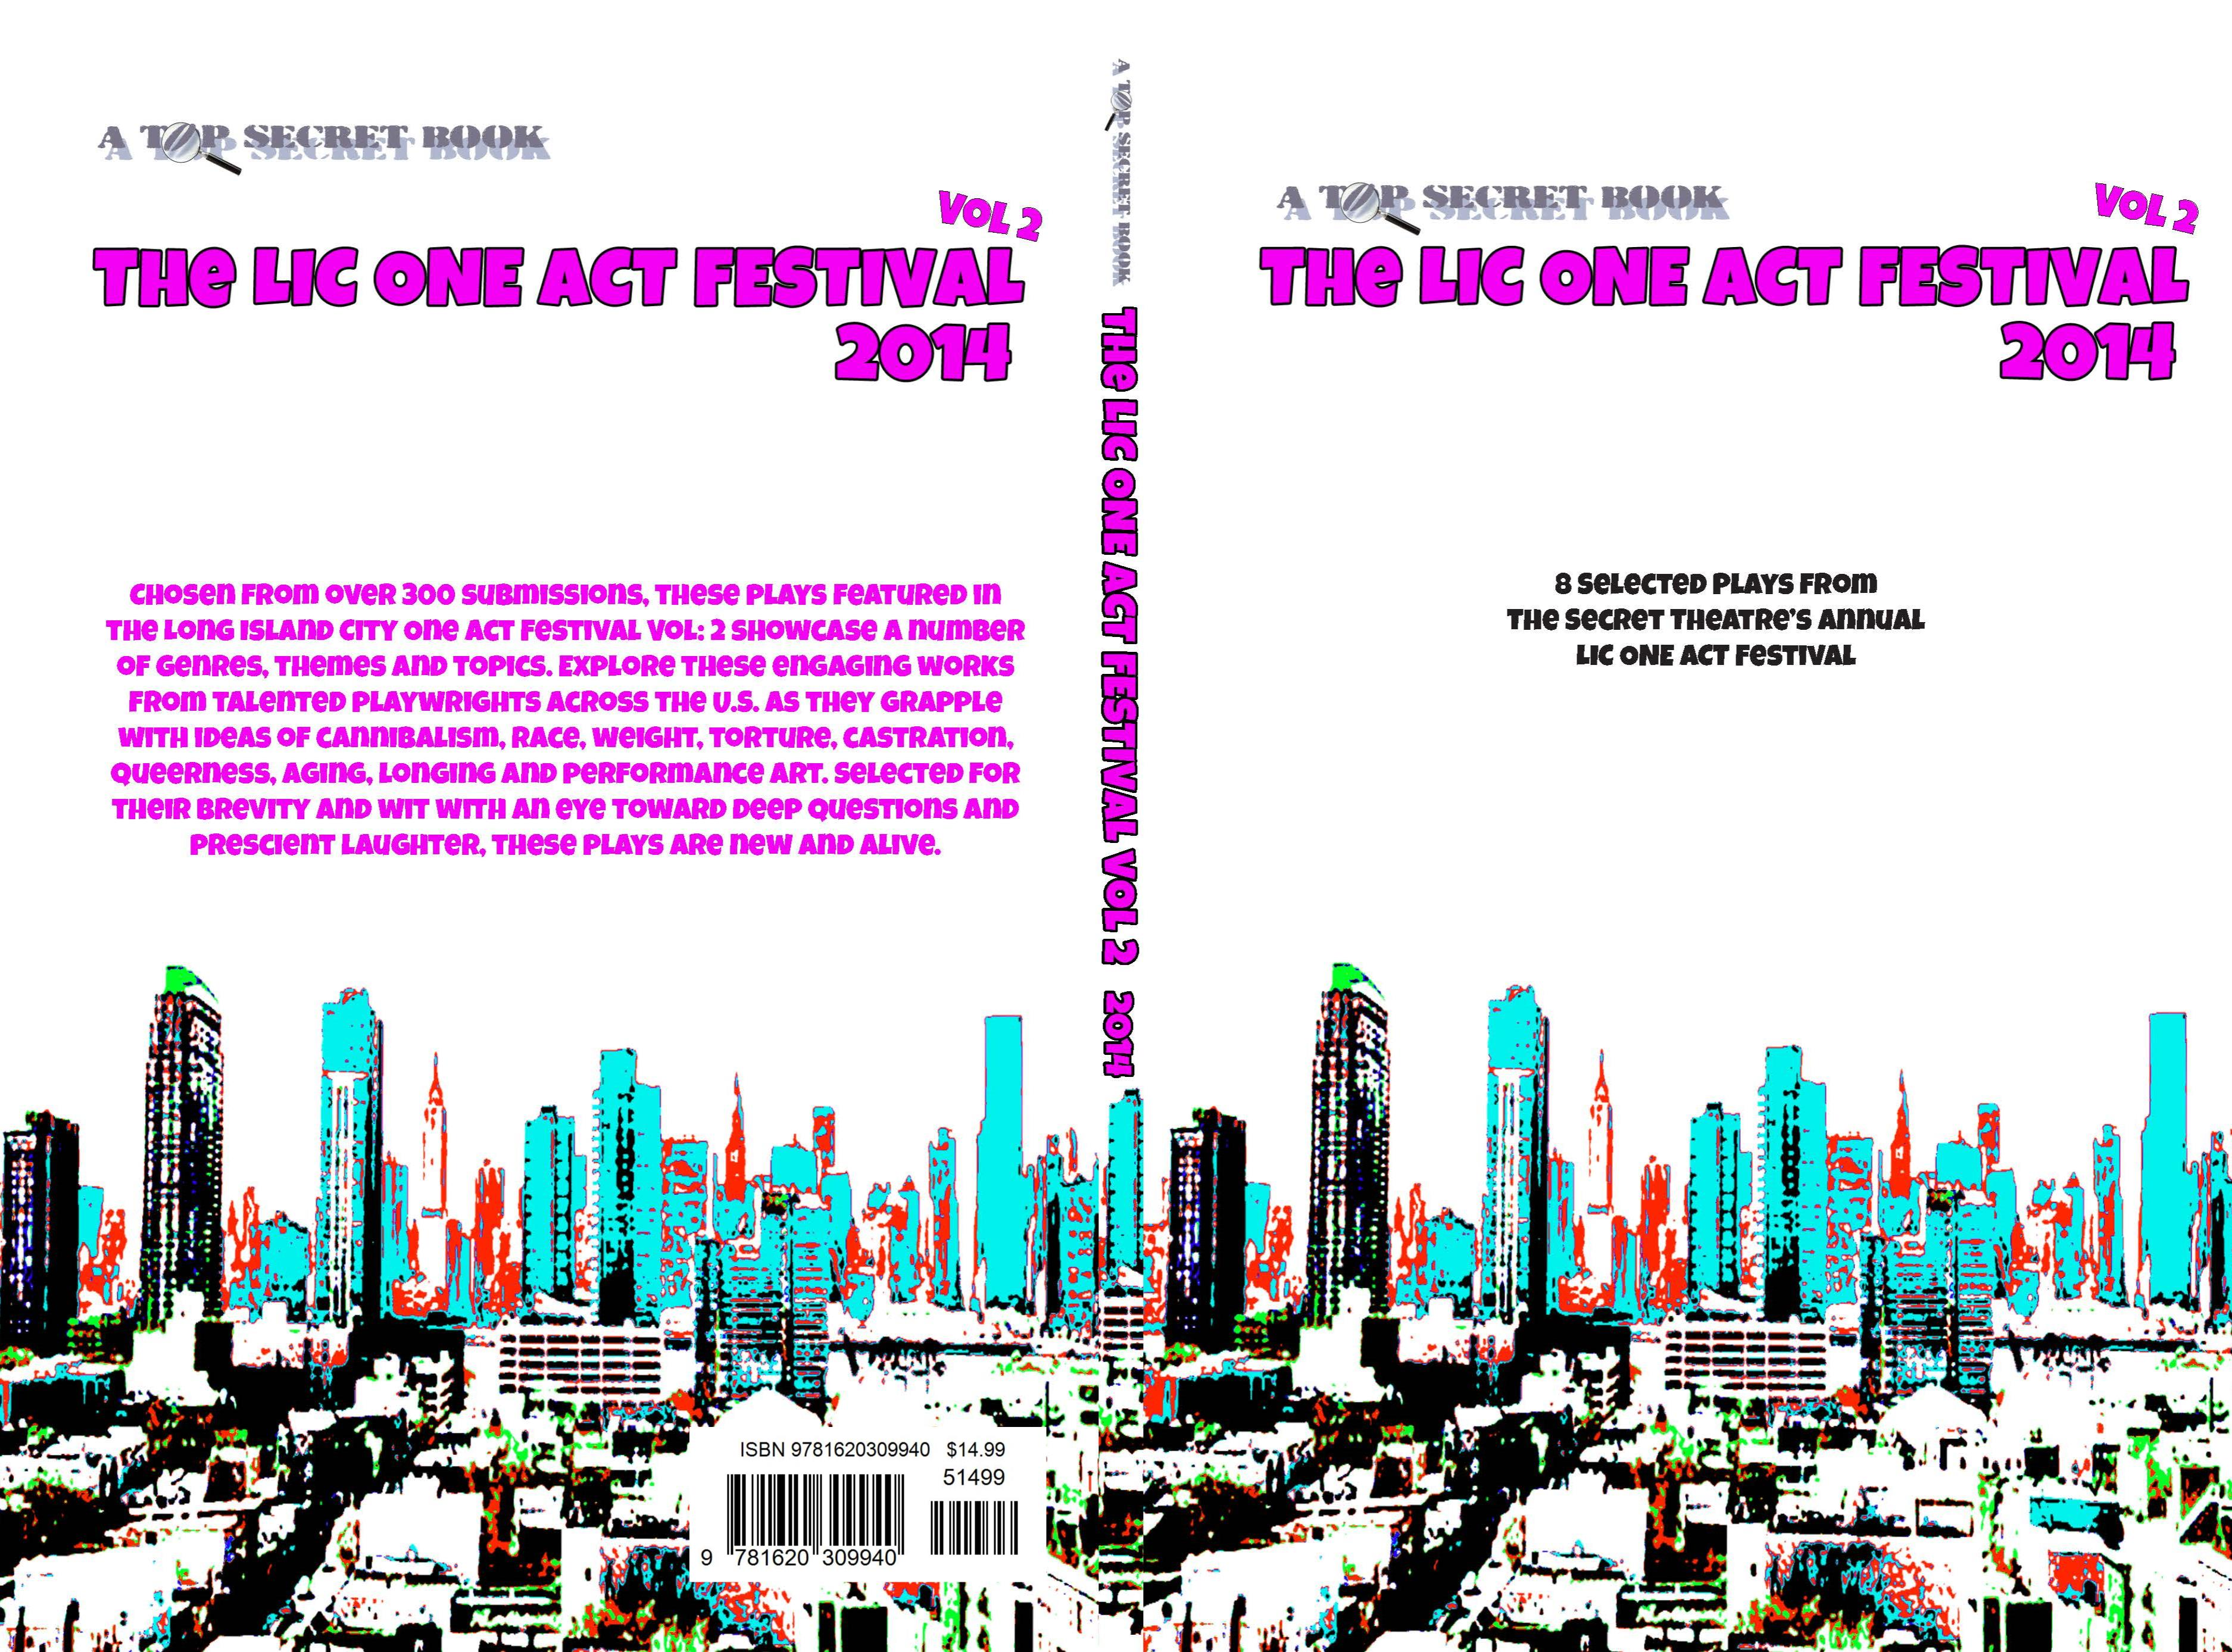 THE LIC ONE ACT PLAY FESTIVAL VOL. 2 2014 cover image